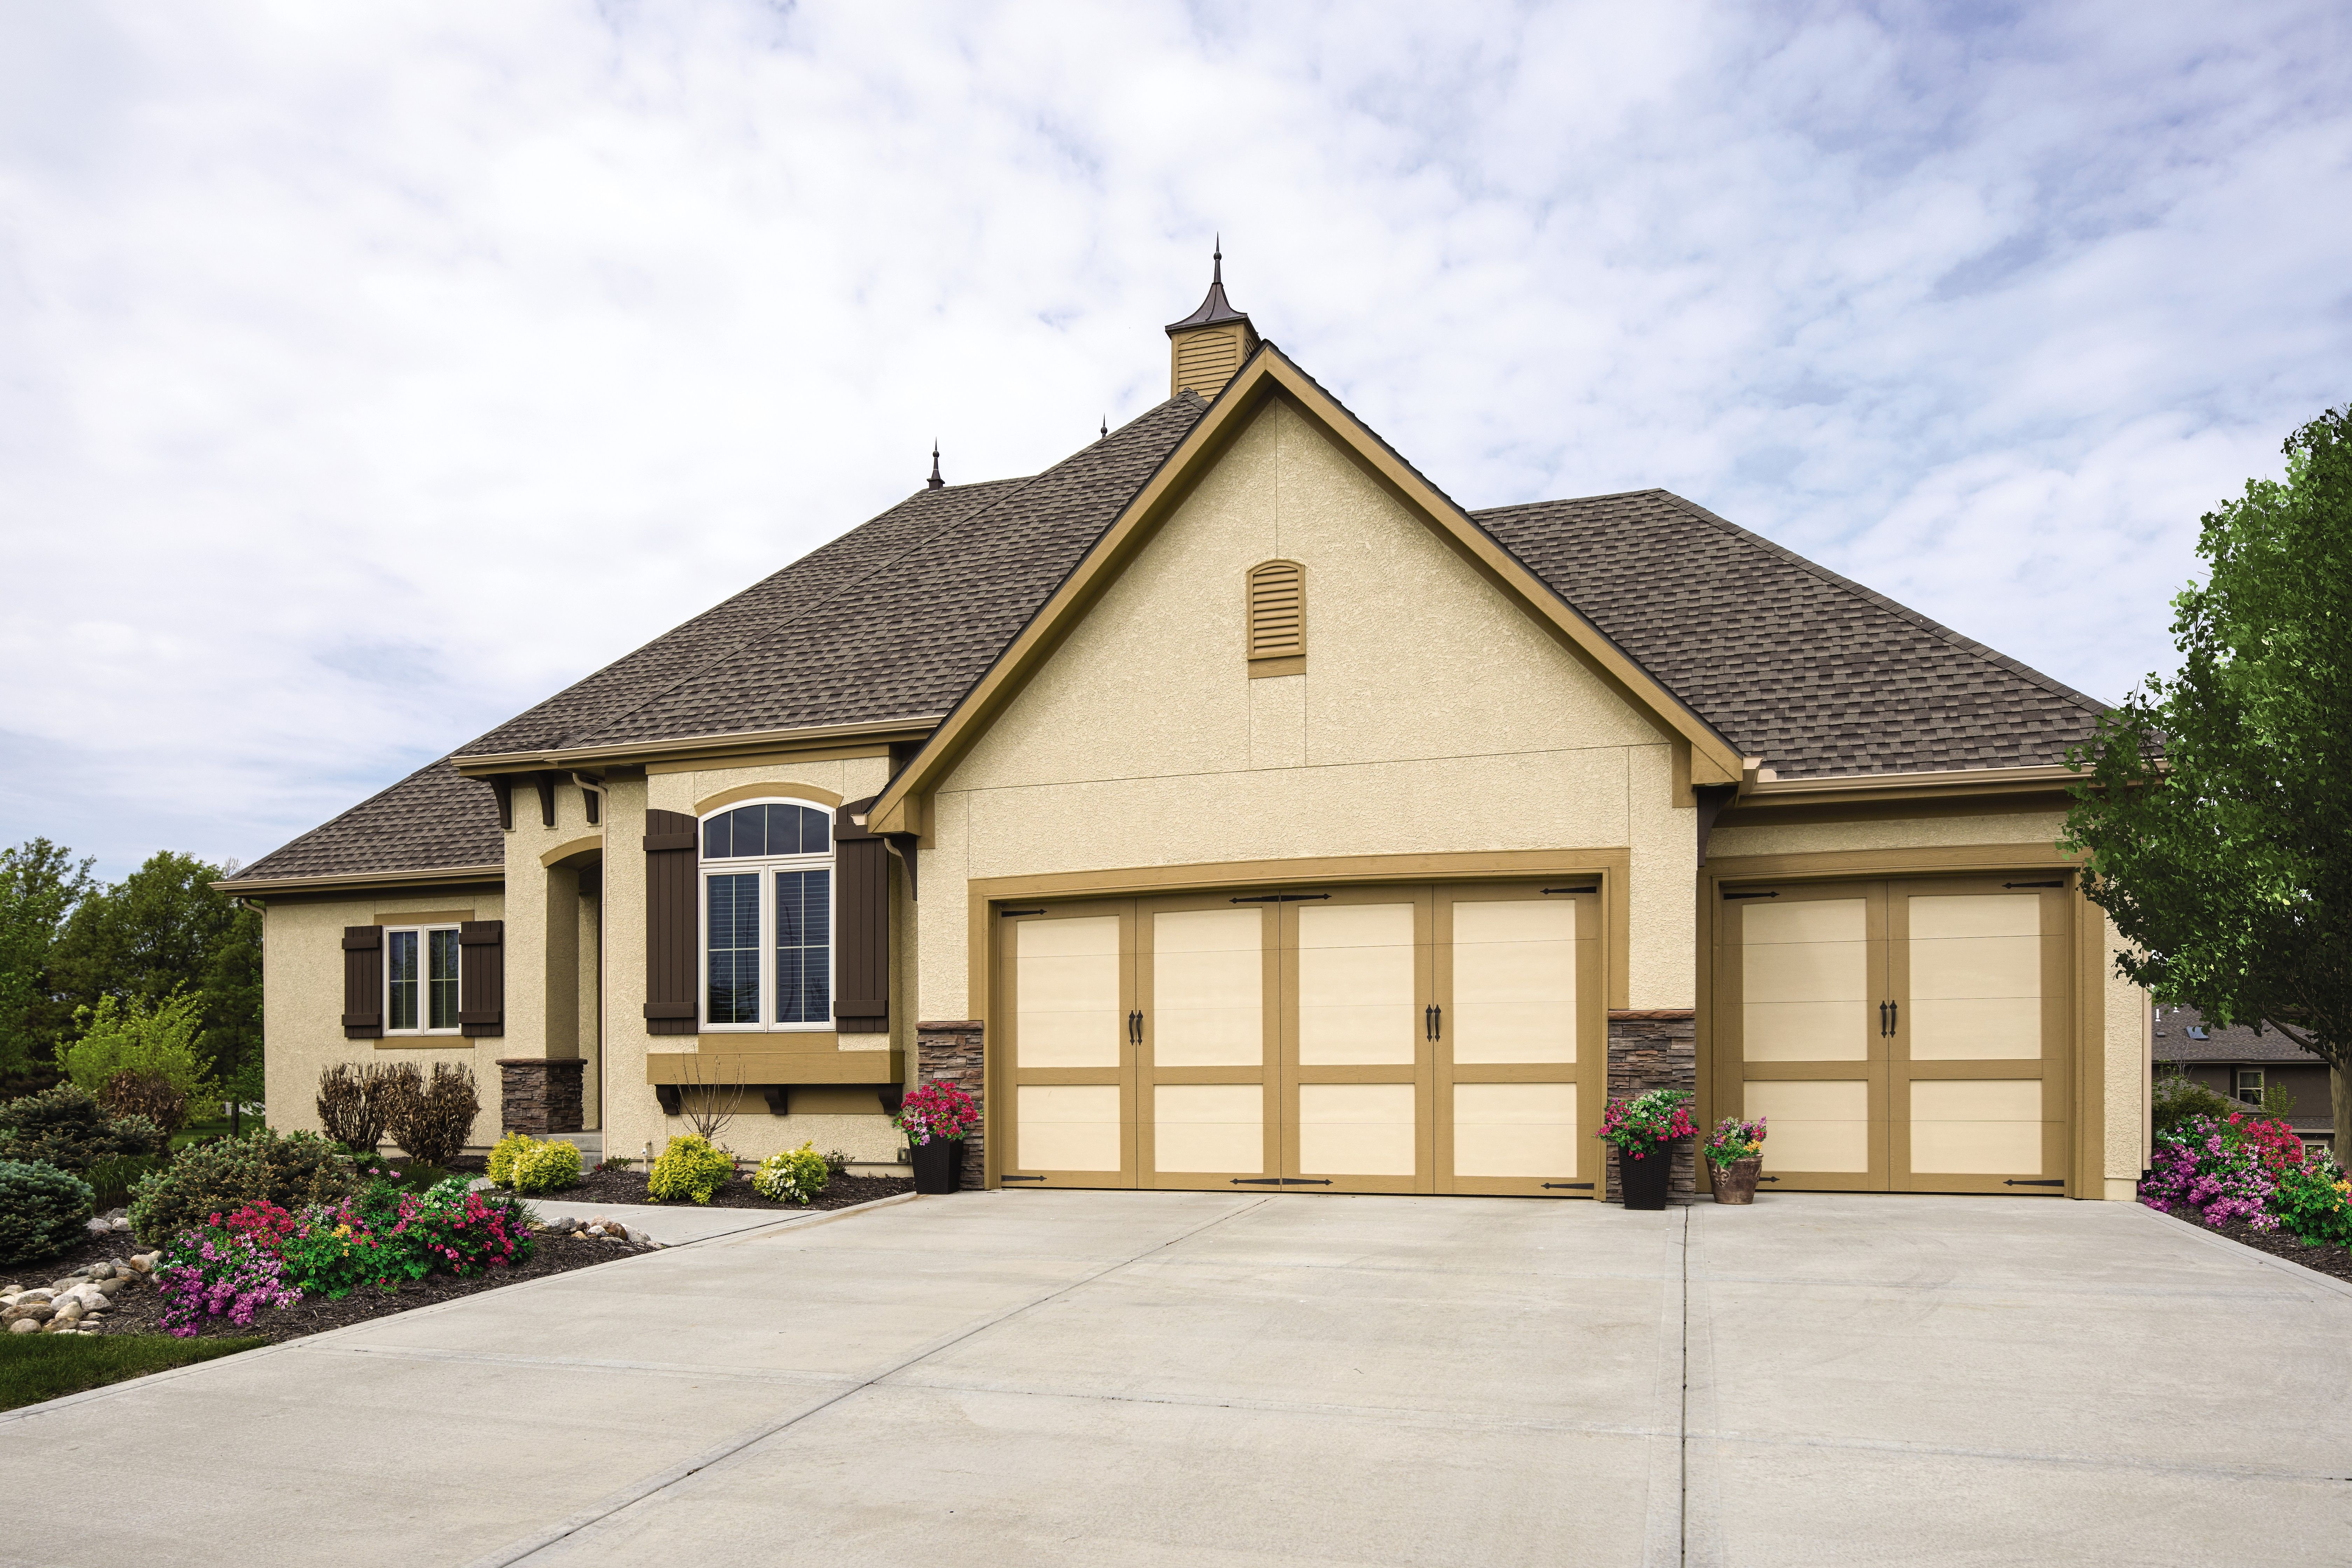 Custom Garage Door Colors Carriage House Doors Custom Garage Doors Garage Door Colors